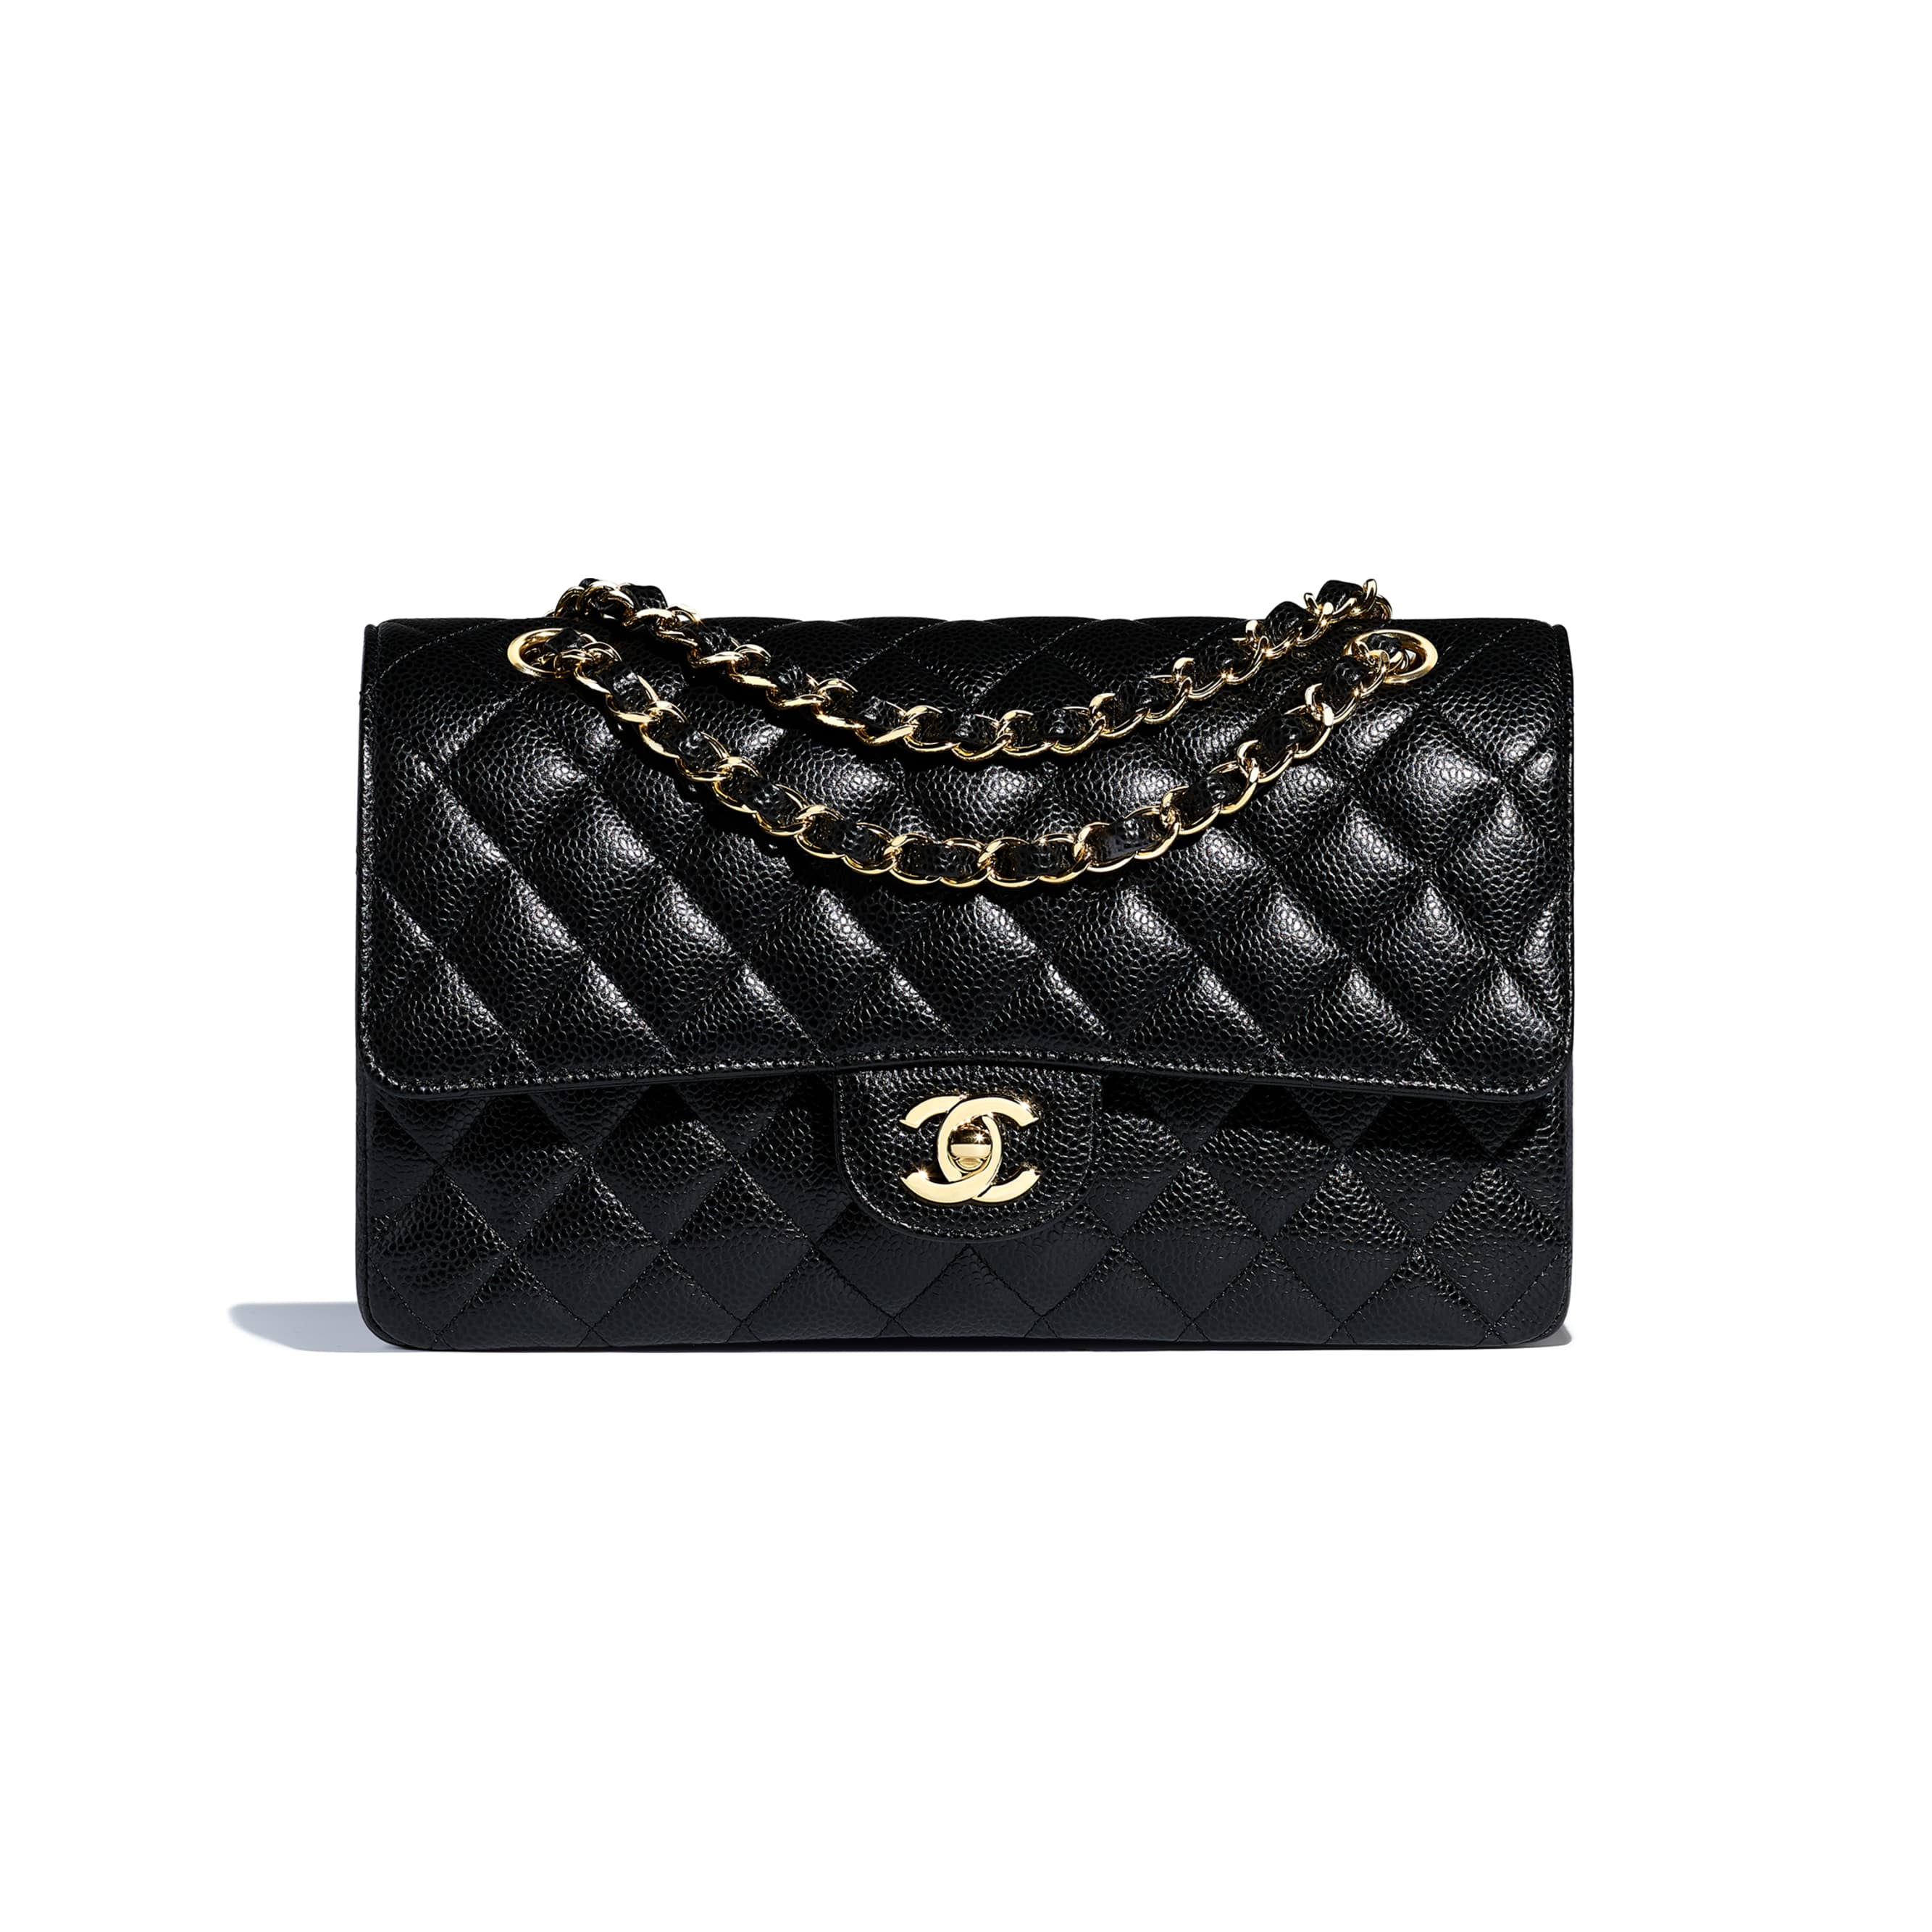 716d90d1cd 10 Iconic Chanel Bags Worth the Investment - Brands Blogger